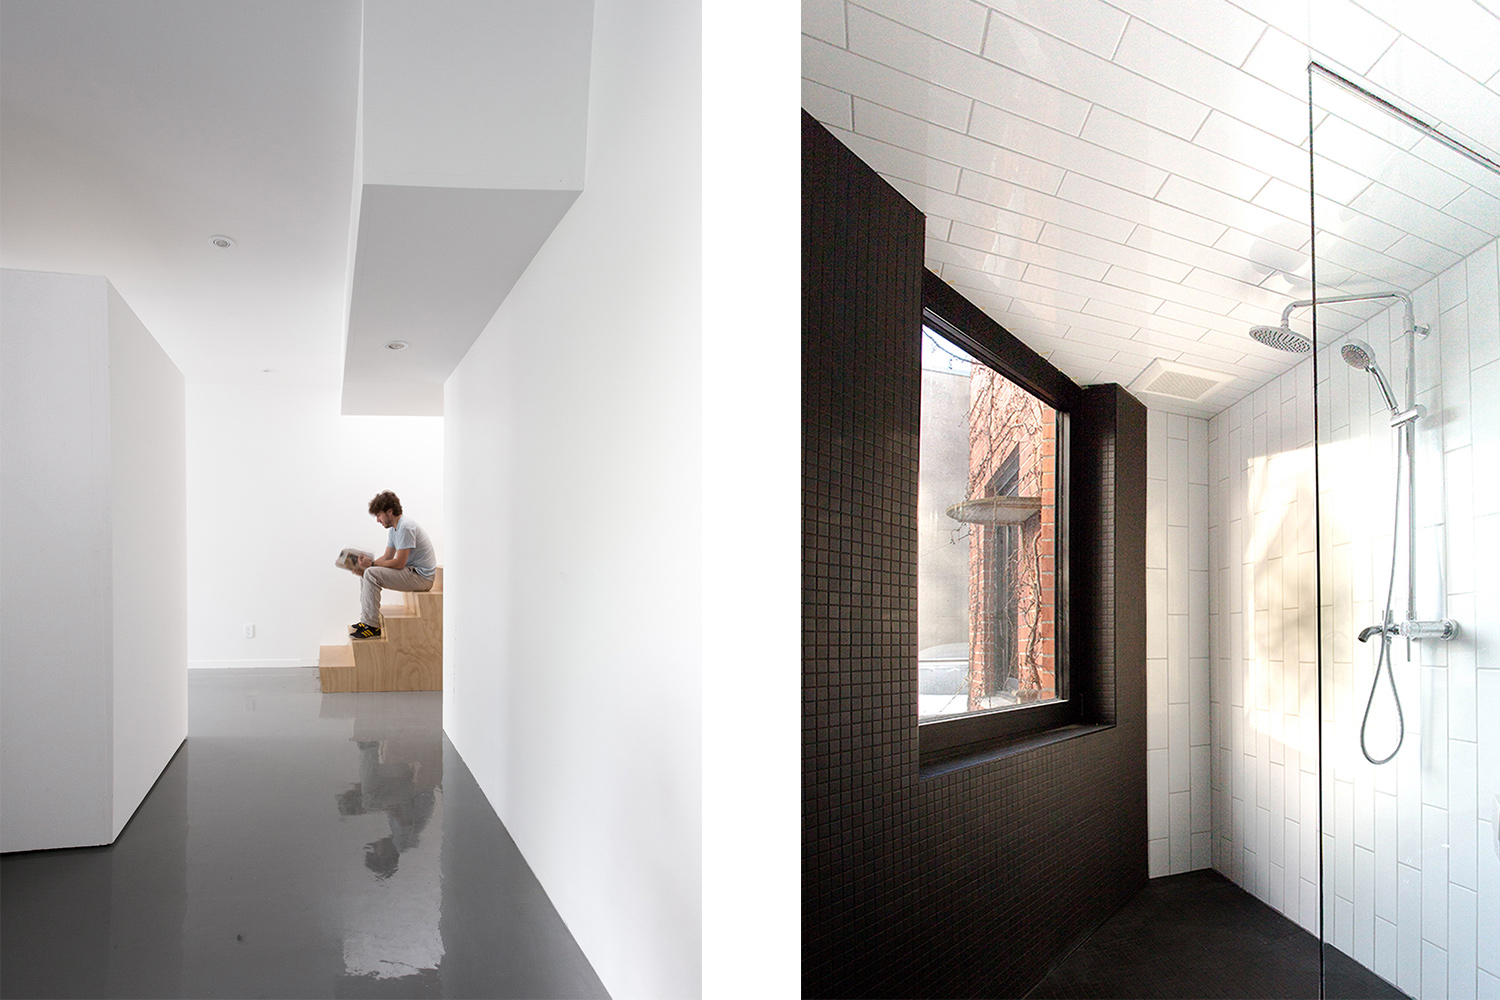 View of the stairs in Russian cherry plywood in a minimalist space. Another view of an open shower with black mosaic and white metro ceramic installed vertically